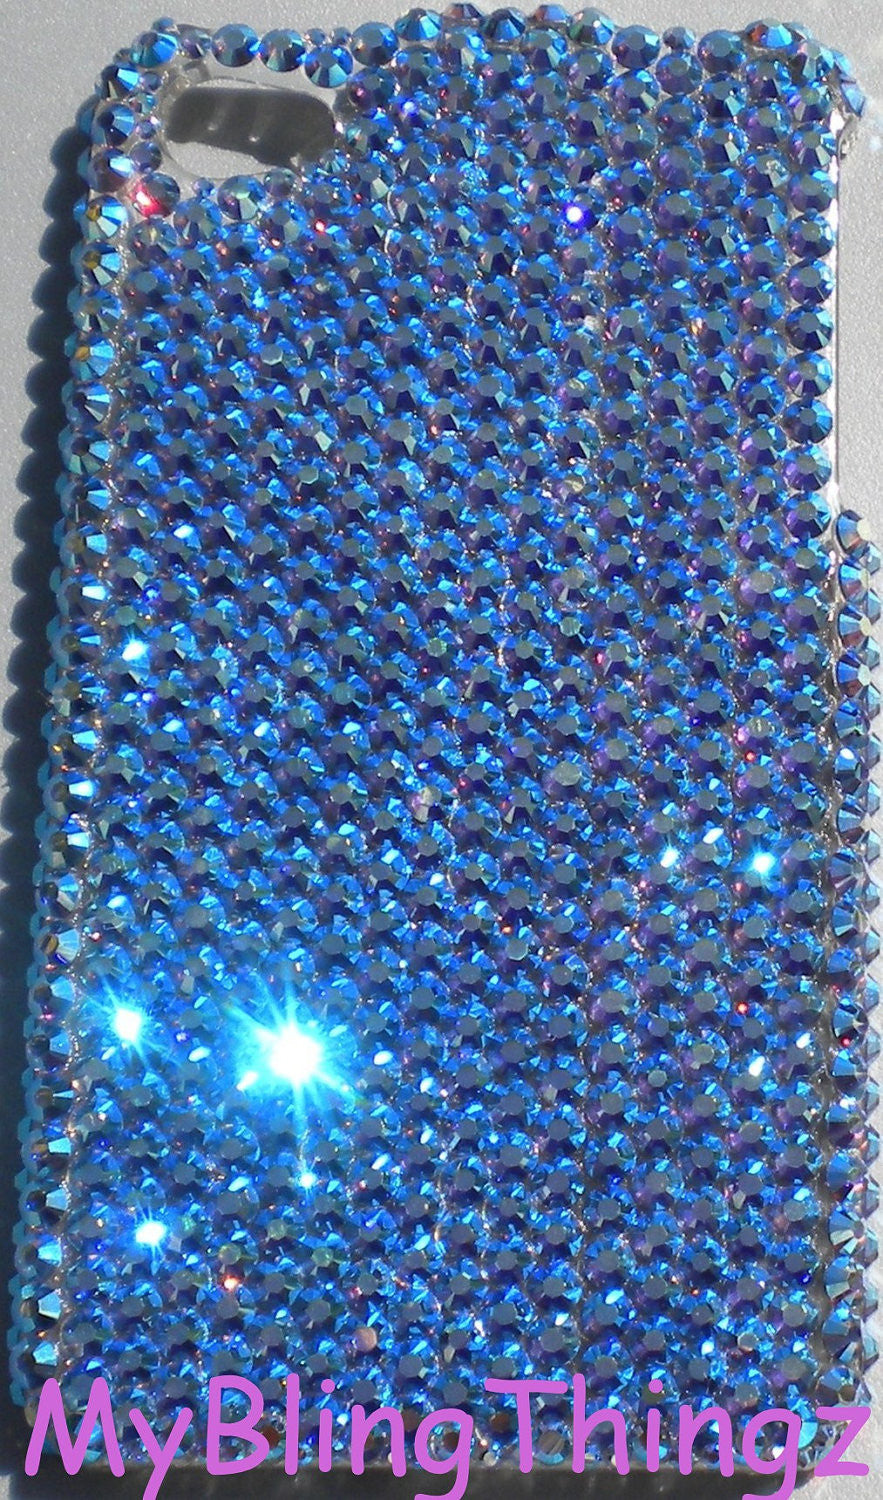 Iridescent Tanzanite AB - Aurora Borealis - Crystal Rhinestone BLING Back Case for iPhone SE 5 5S handmade with 100% Swarovski Crystals